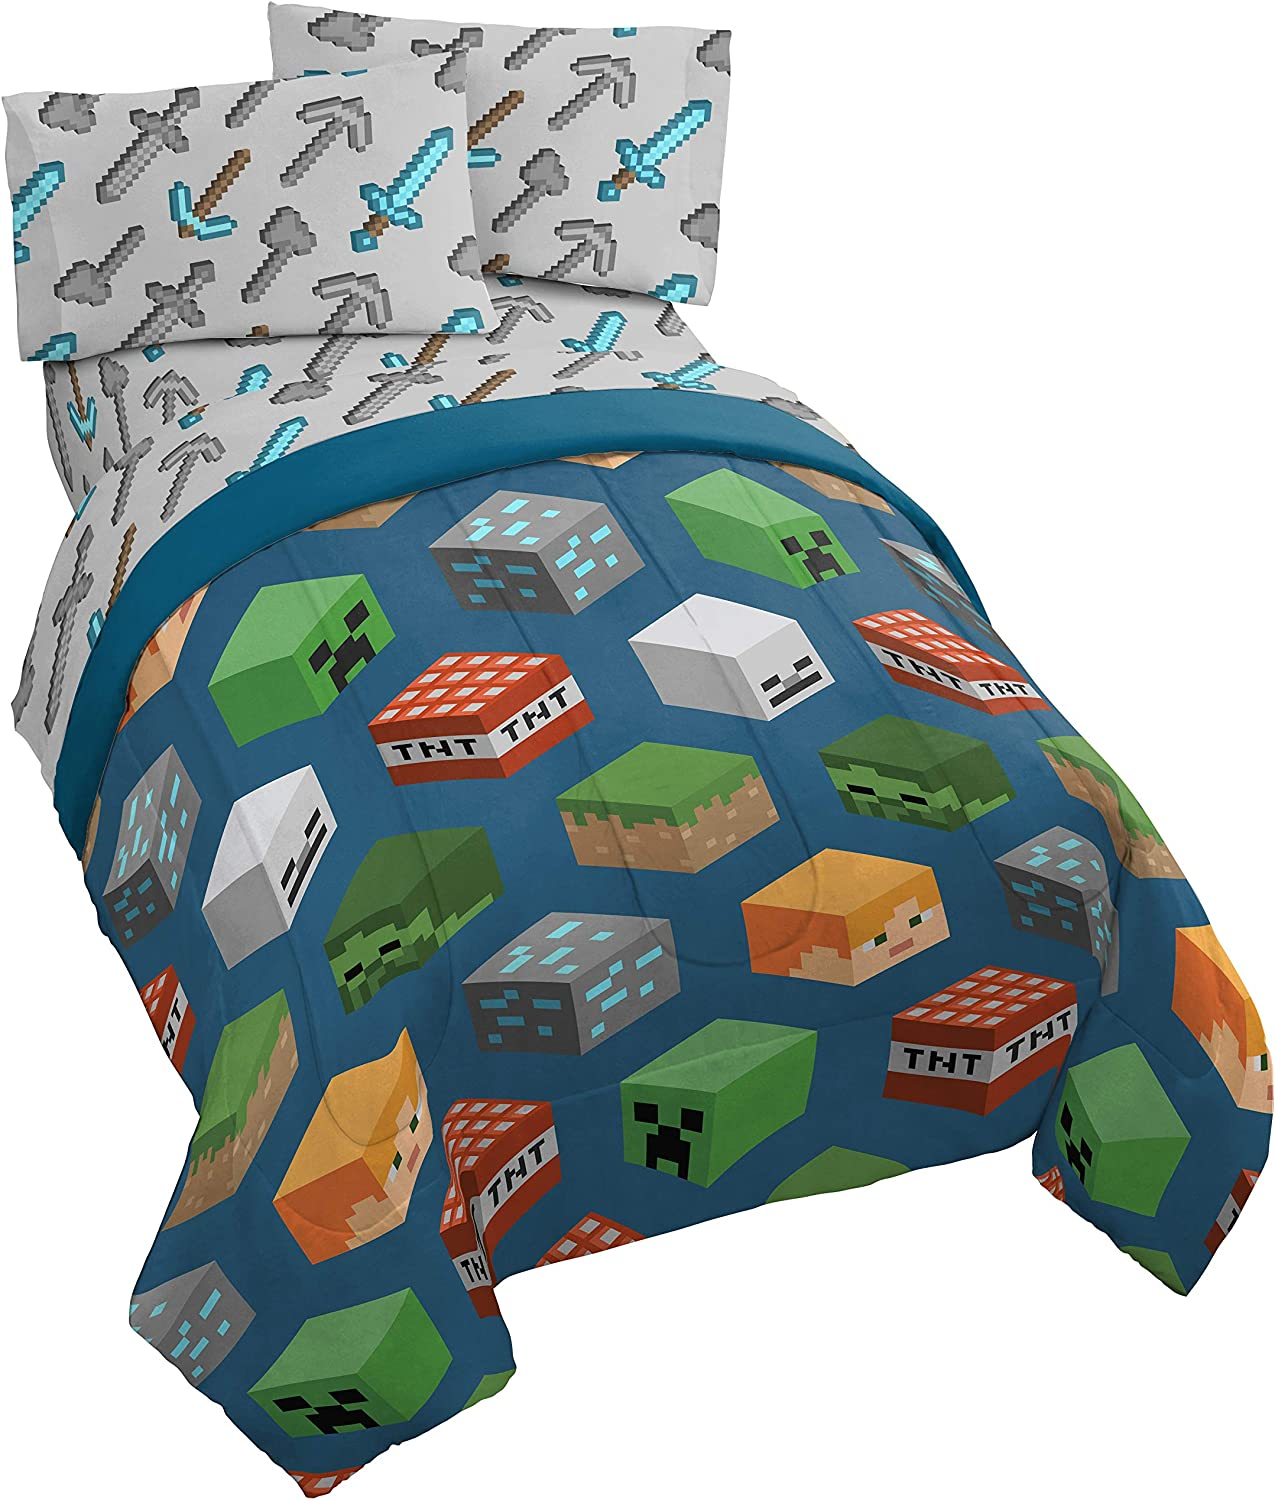 Jay Franco Minecraft Isometric Characters Full Comforter - Super Soft Kids Reversible Bedding Features Creeper - Fade Resistant Polyester Microfiber Fill (Official Minecraft Product)